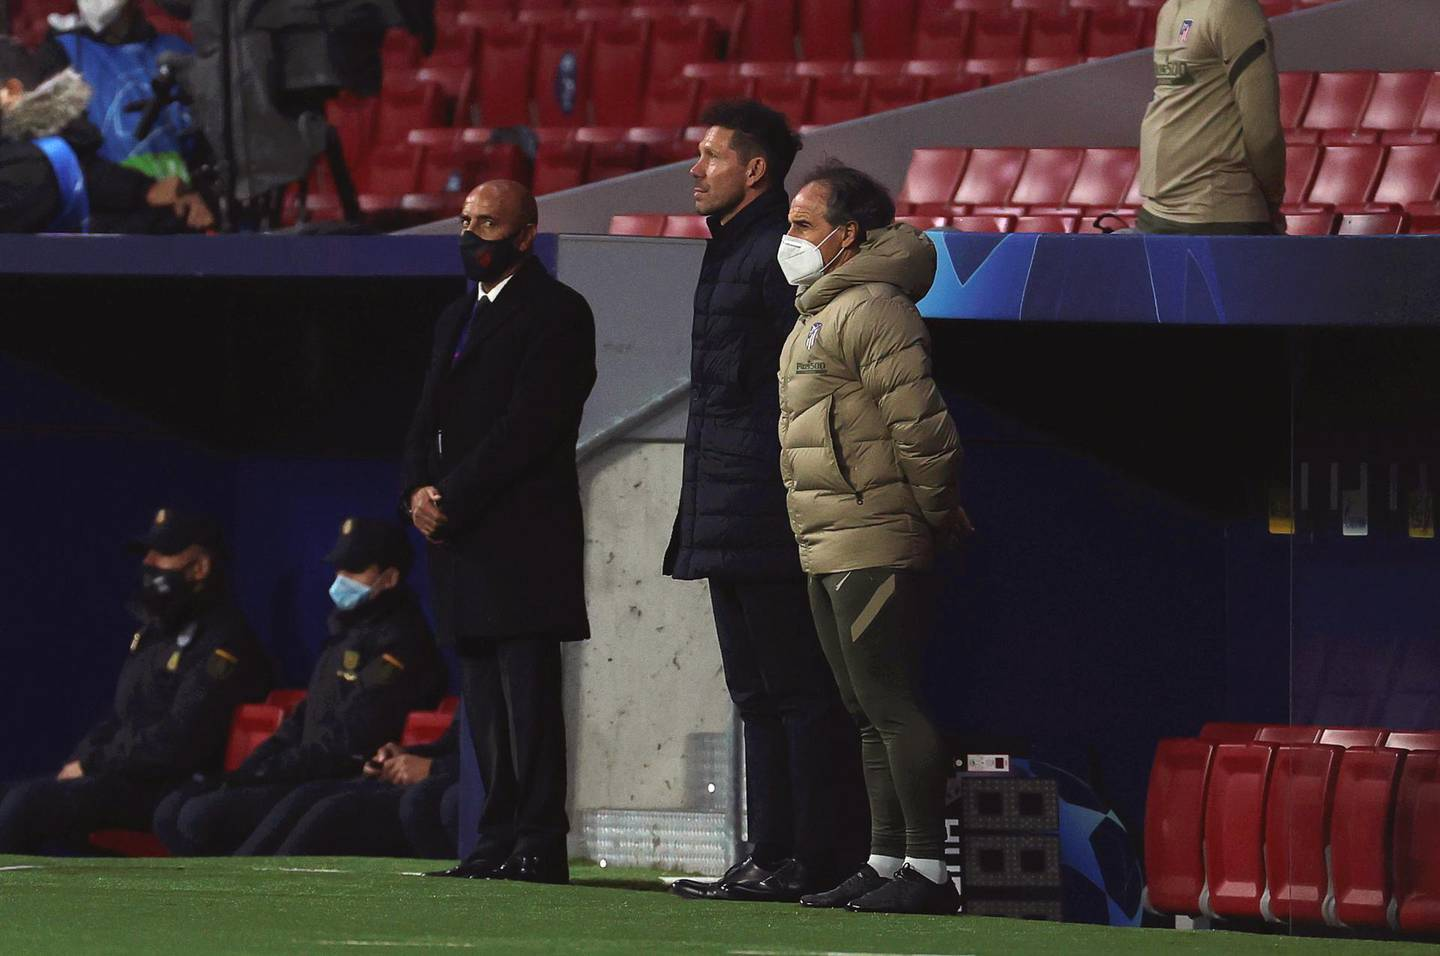 epa08842091 Atletico Madrid's Argentinean head coach Diego Simeone (C) observes a minute of silence in memory of late Argentinean soccer legend Diego Armando Maradona ahead of the UEFA Champions League group A soccer match between Atletico Madrid and Lokomotiv Moscow at Metropolitano stadium in Madrid, Spain, 25 November 2020.  EPA/JUANJO MARTIN